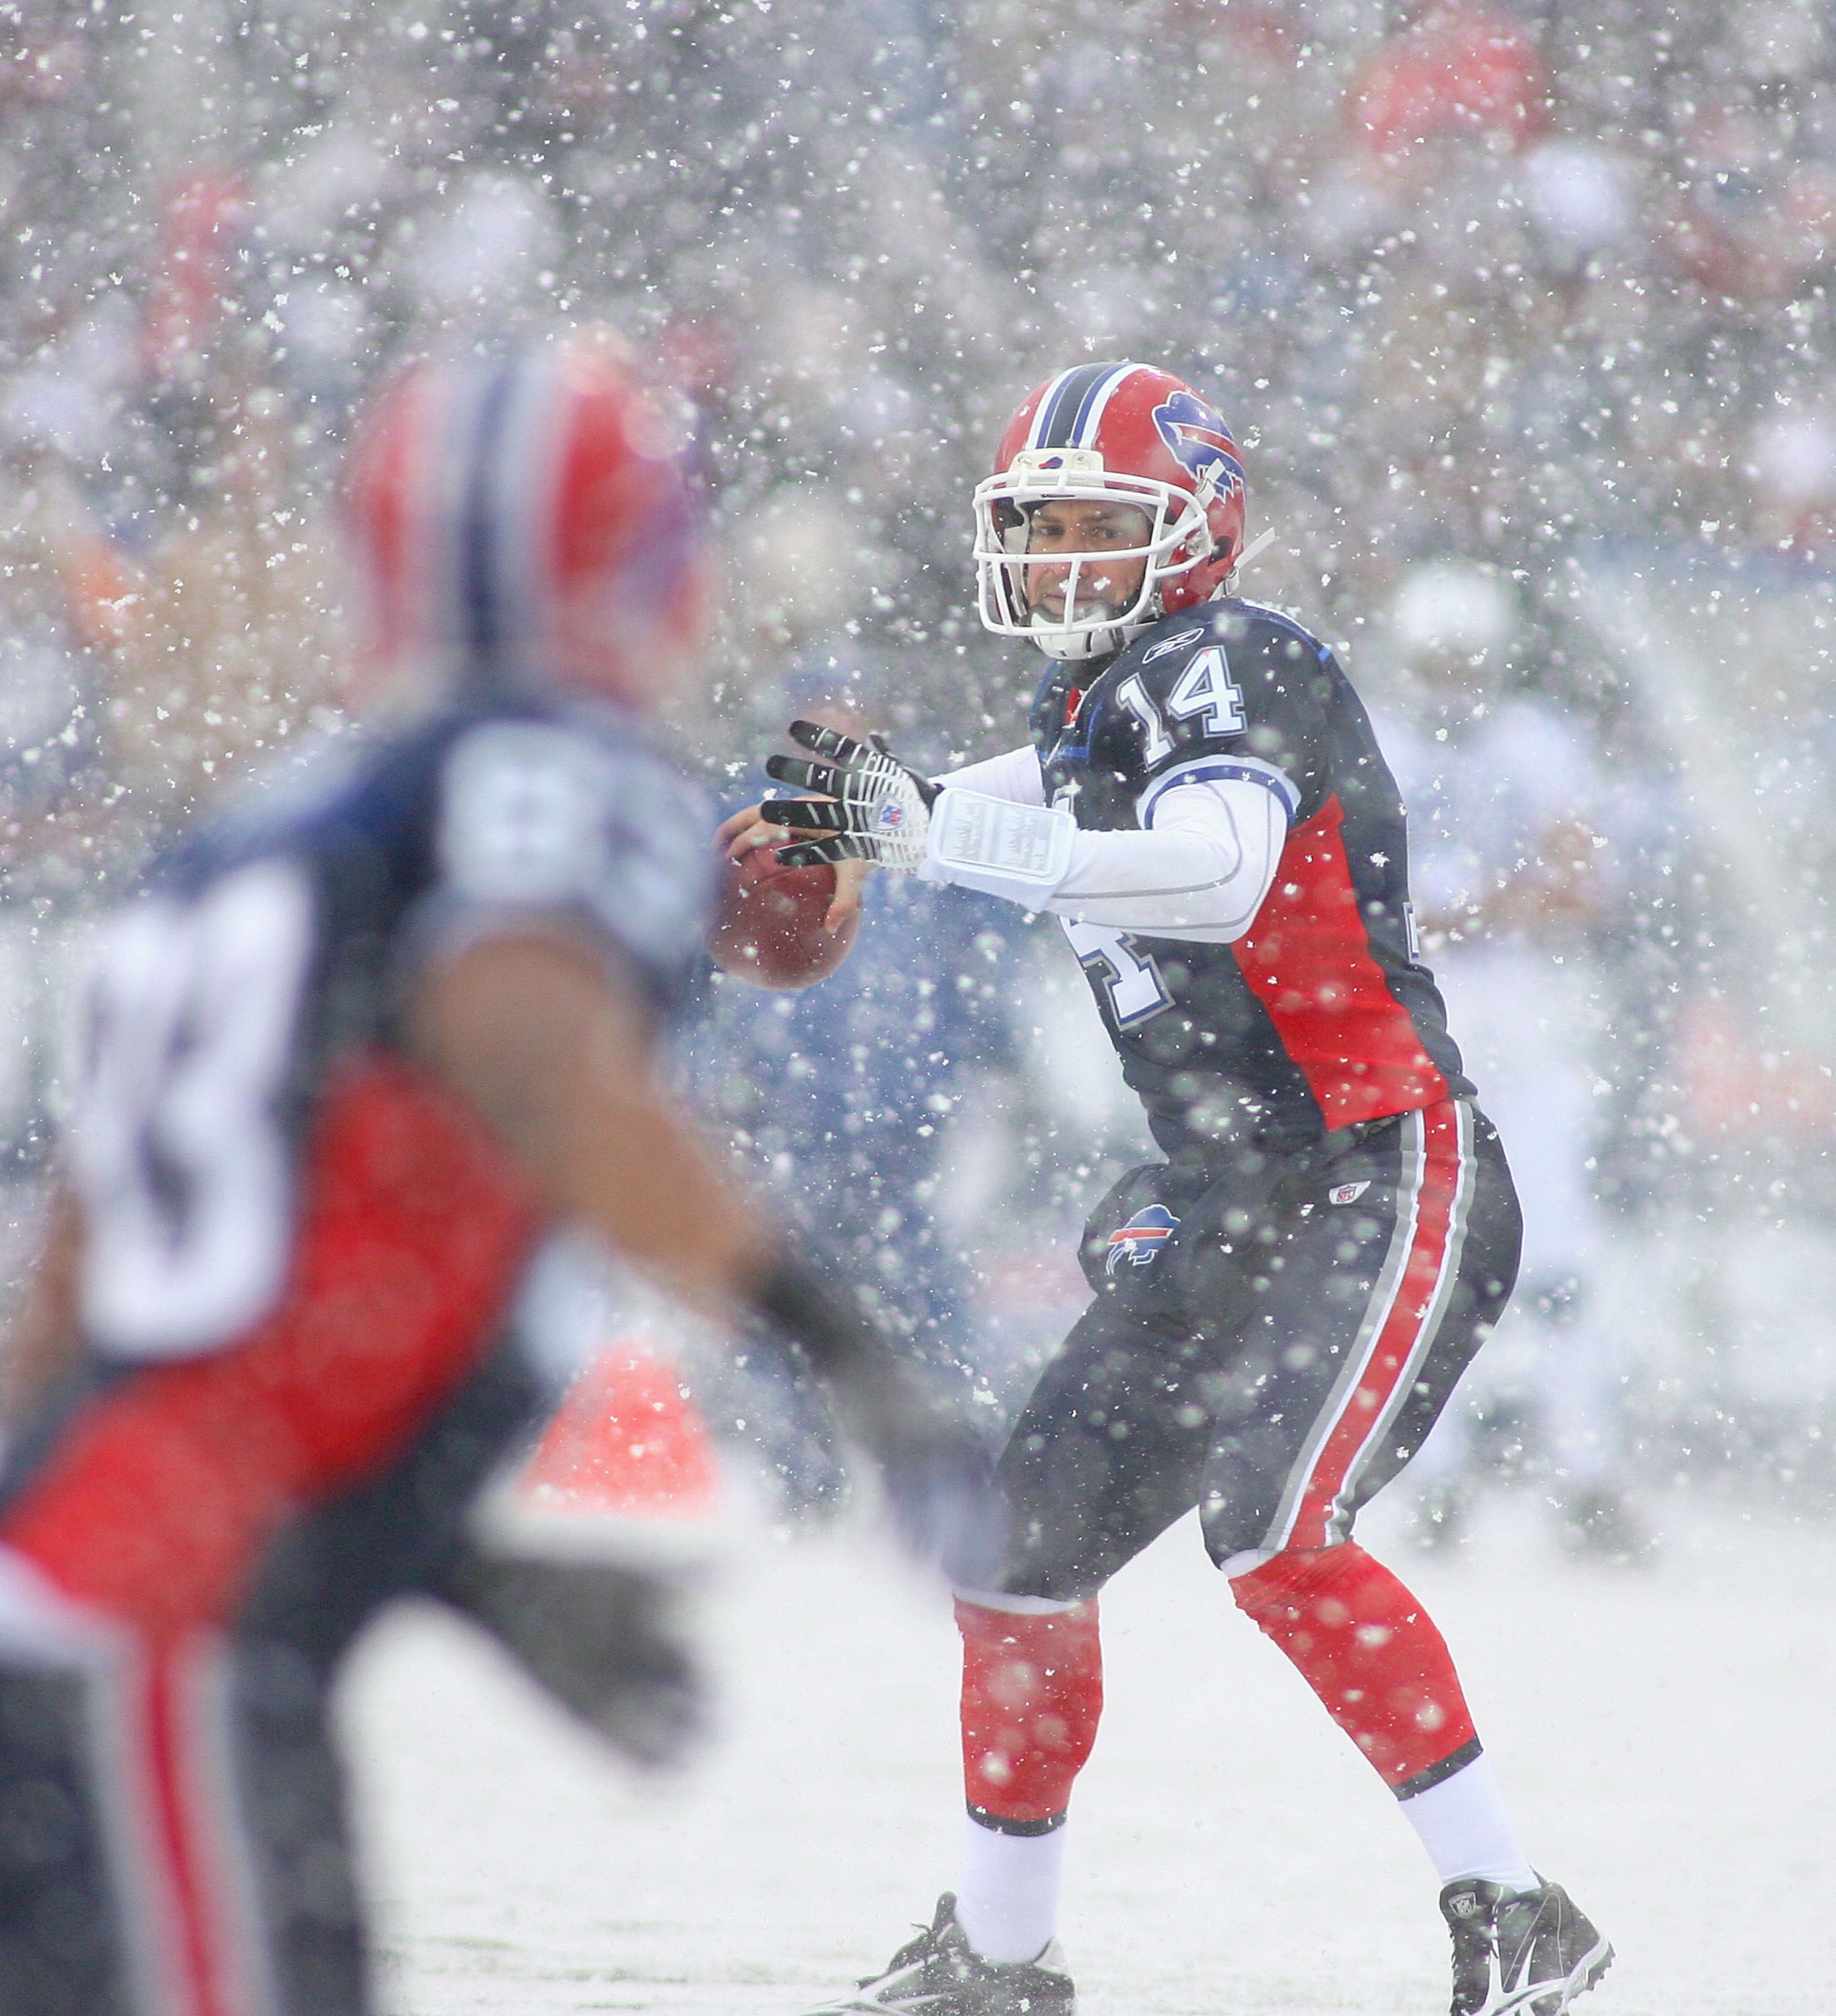 ORCHARD PARK, NY - JANUARY 03: Ryan Fitzpatrick #14 of the Buffalo Bills readies to throw a pass to teammate Lee Evans #83 against the Indianapolis Colts at Ralph Wilson Stadium on January 3, 2010 in Orchard Park, New York.  (Photo by Rick Stewart/Getty I